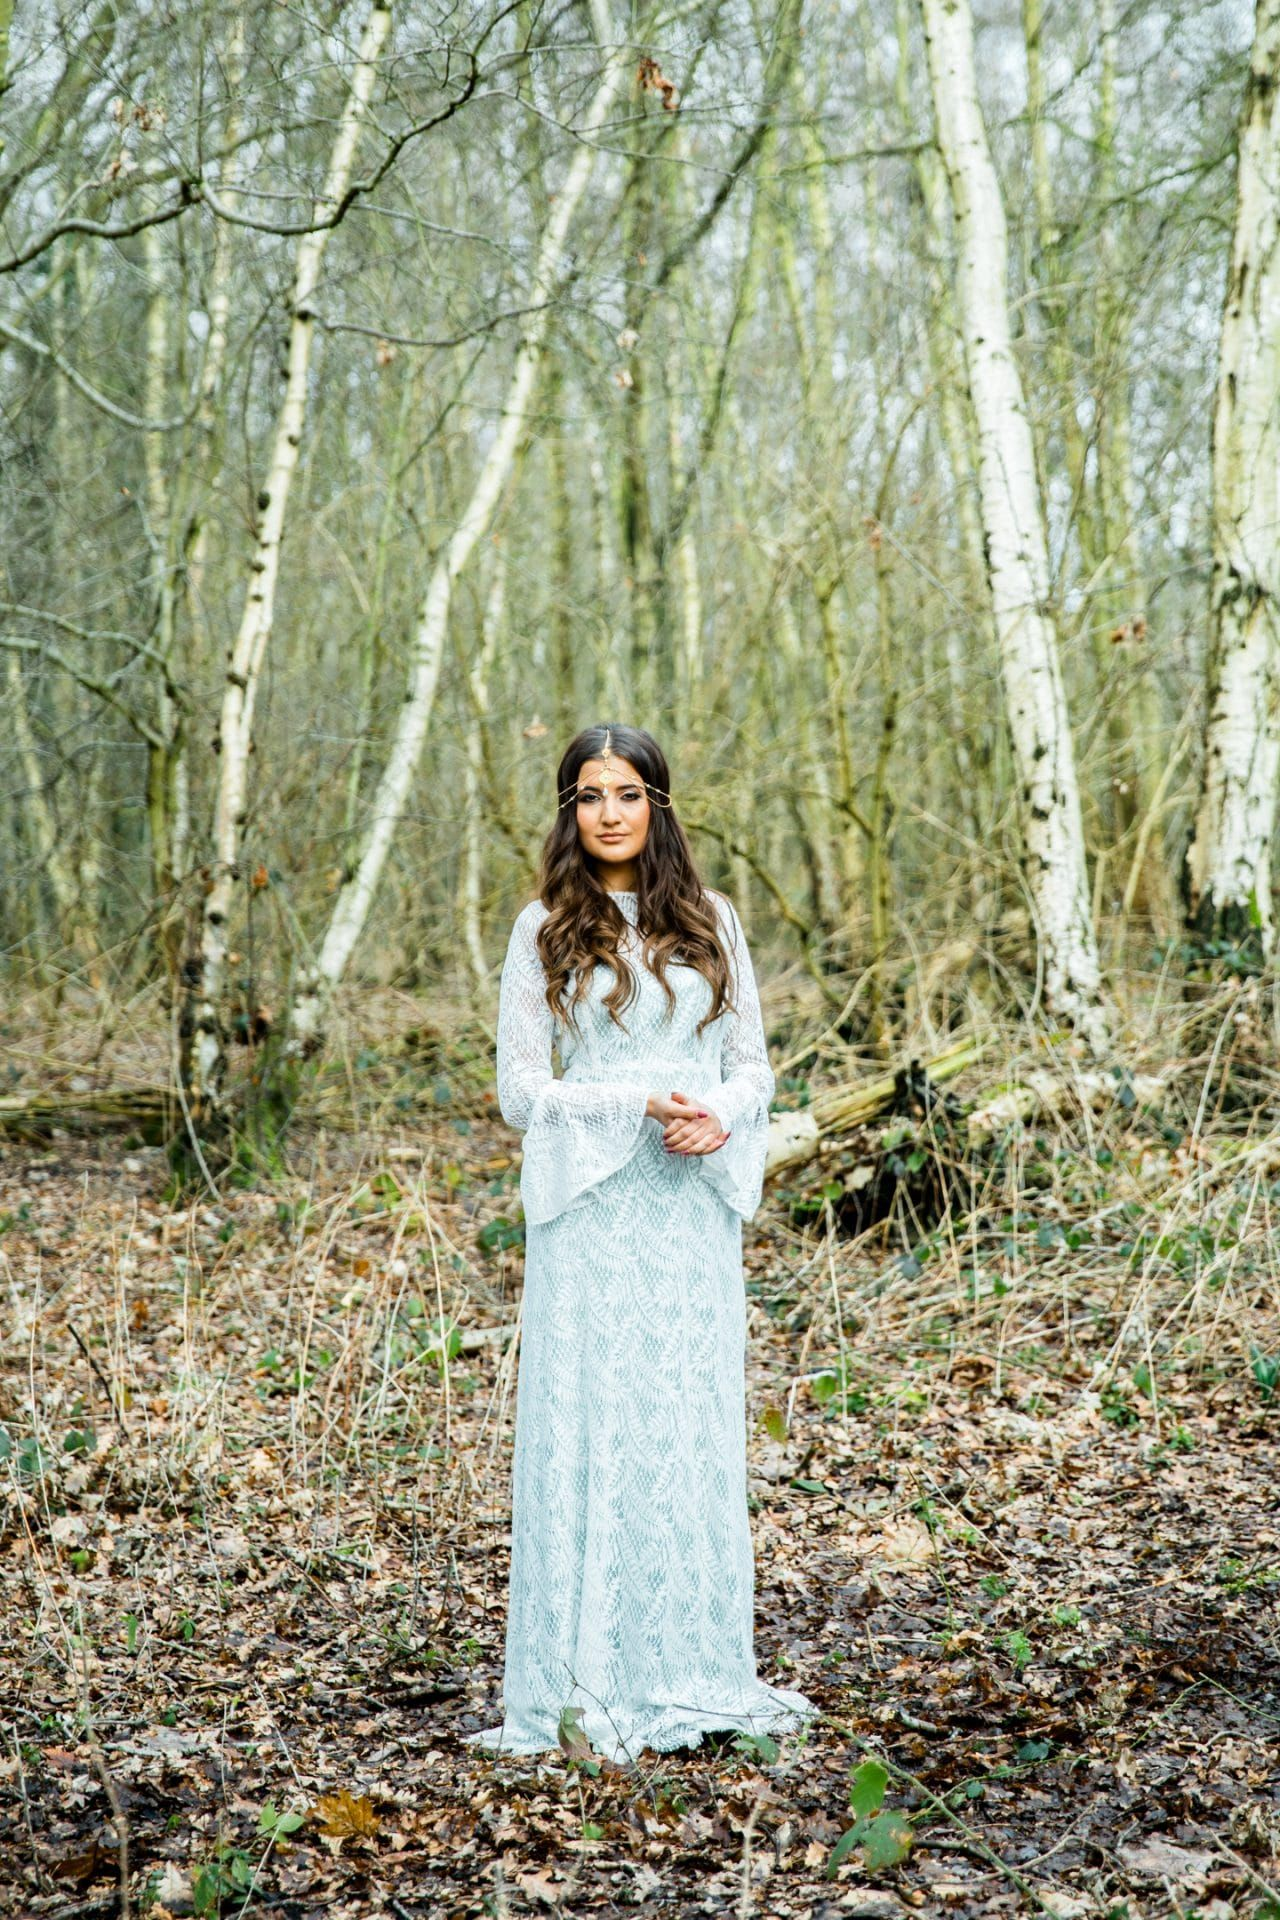 Outside wedding dresses  Lucy Cant Dance wedding dressWoodland luxe styled shoot Captured